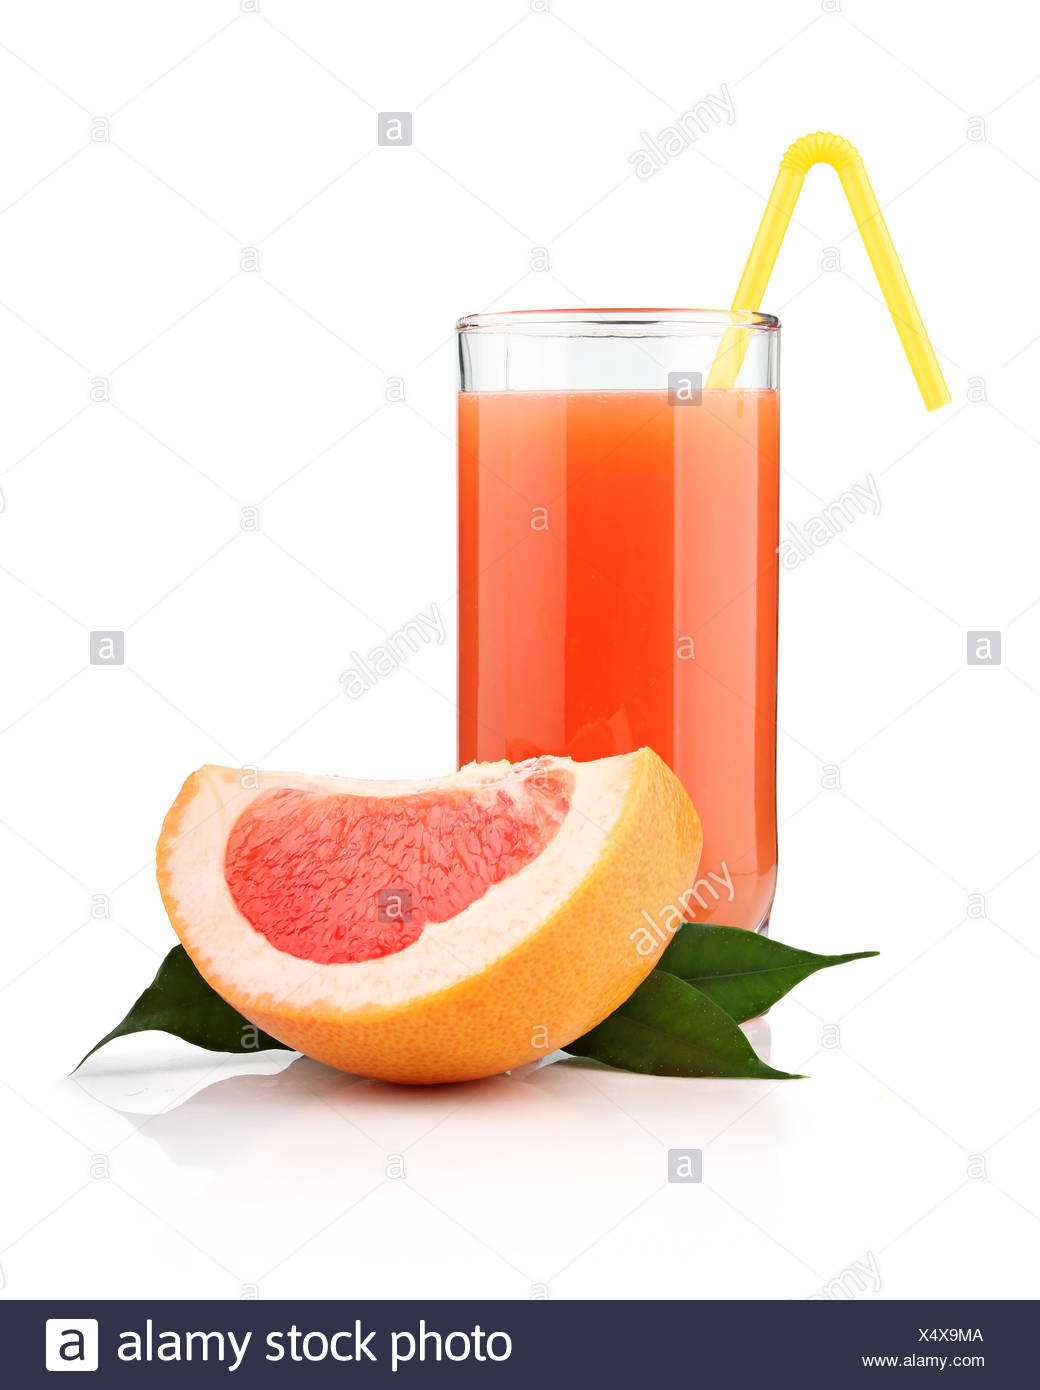 Full glass of grapefruit juice and fruits isolated - Stock Image